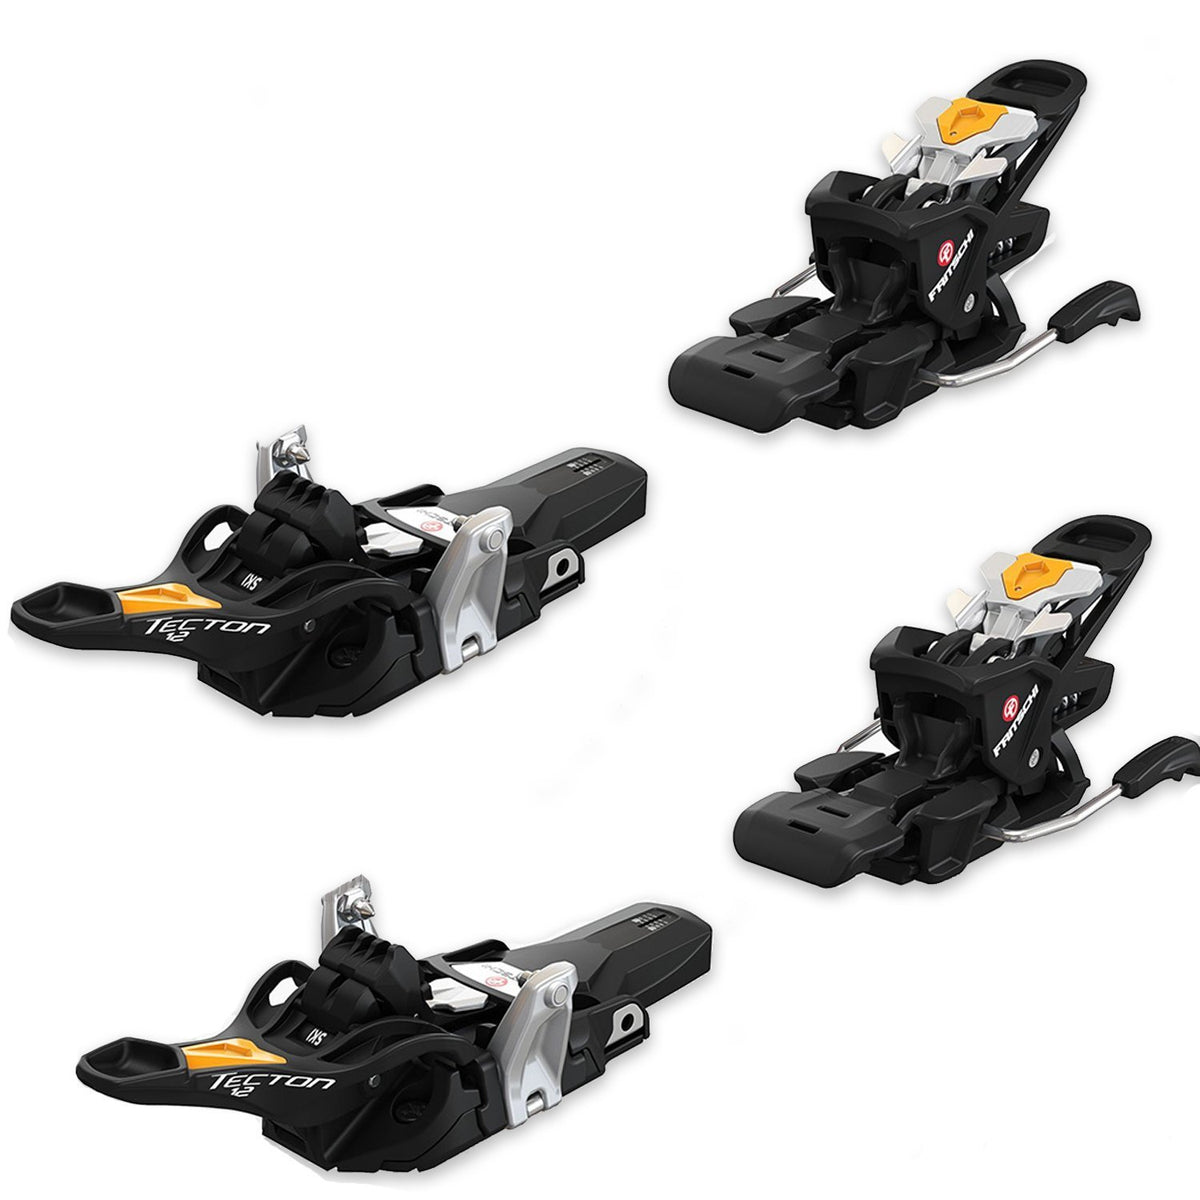 Fritschi Swiss Ski Bindings Fritschi Tecton 12 Ski Touring Binding - 100mm Brake